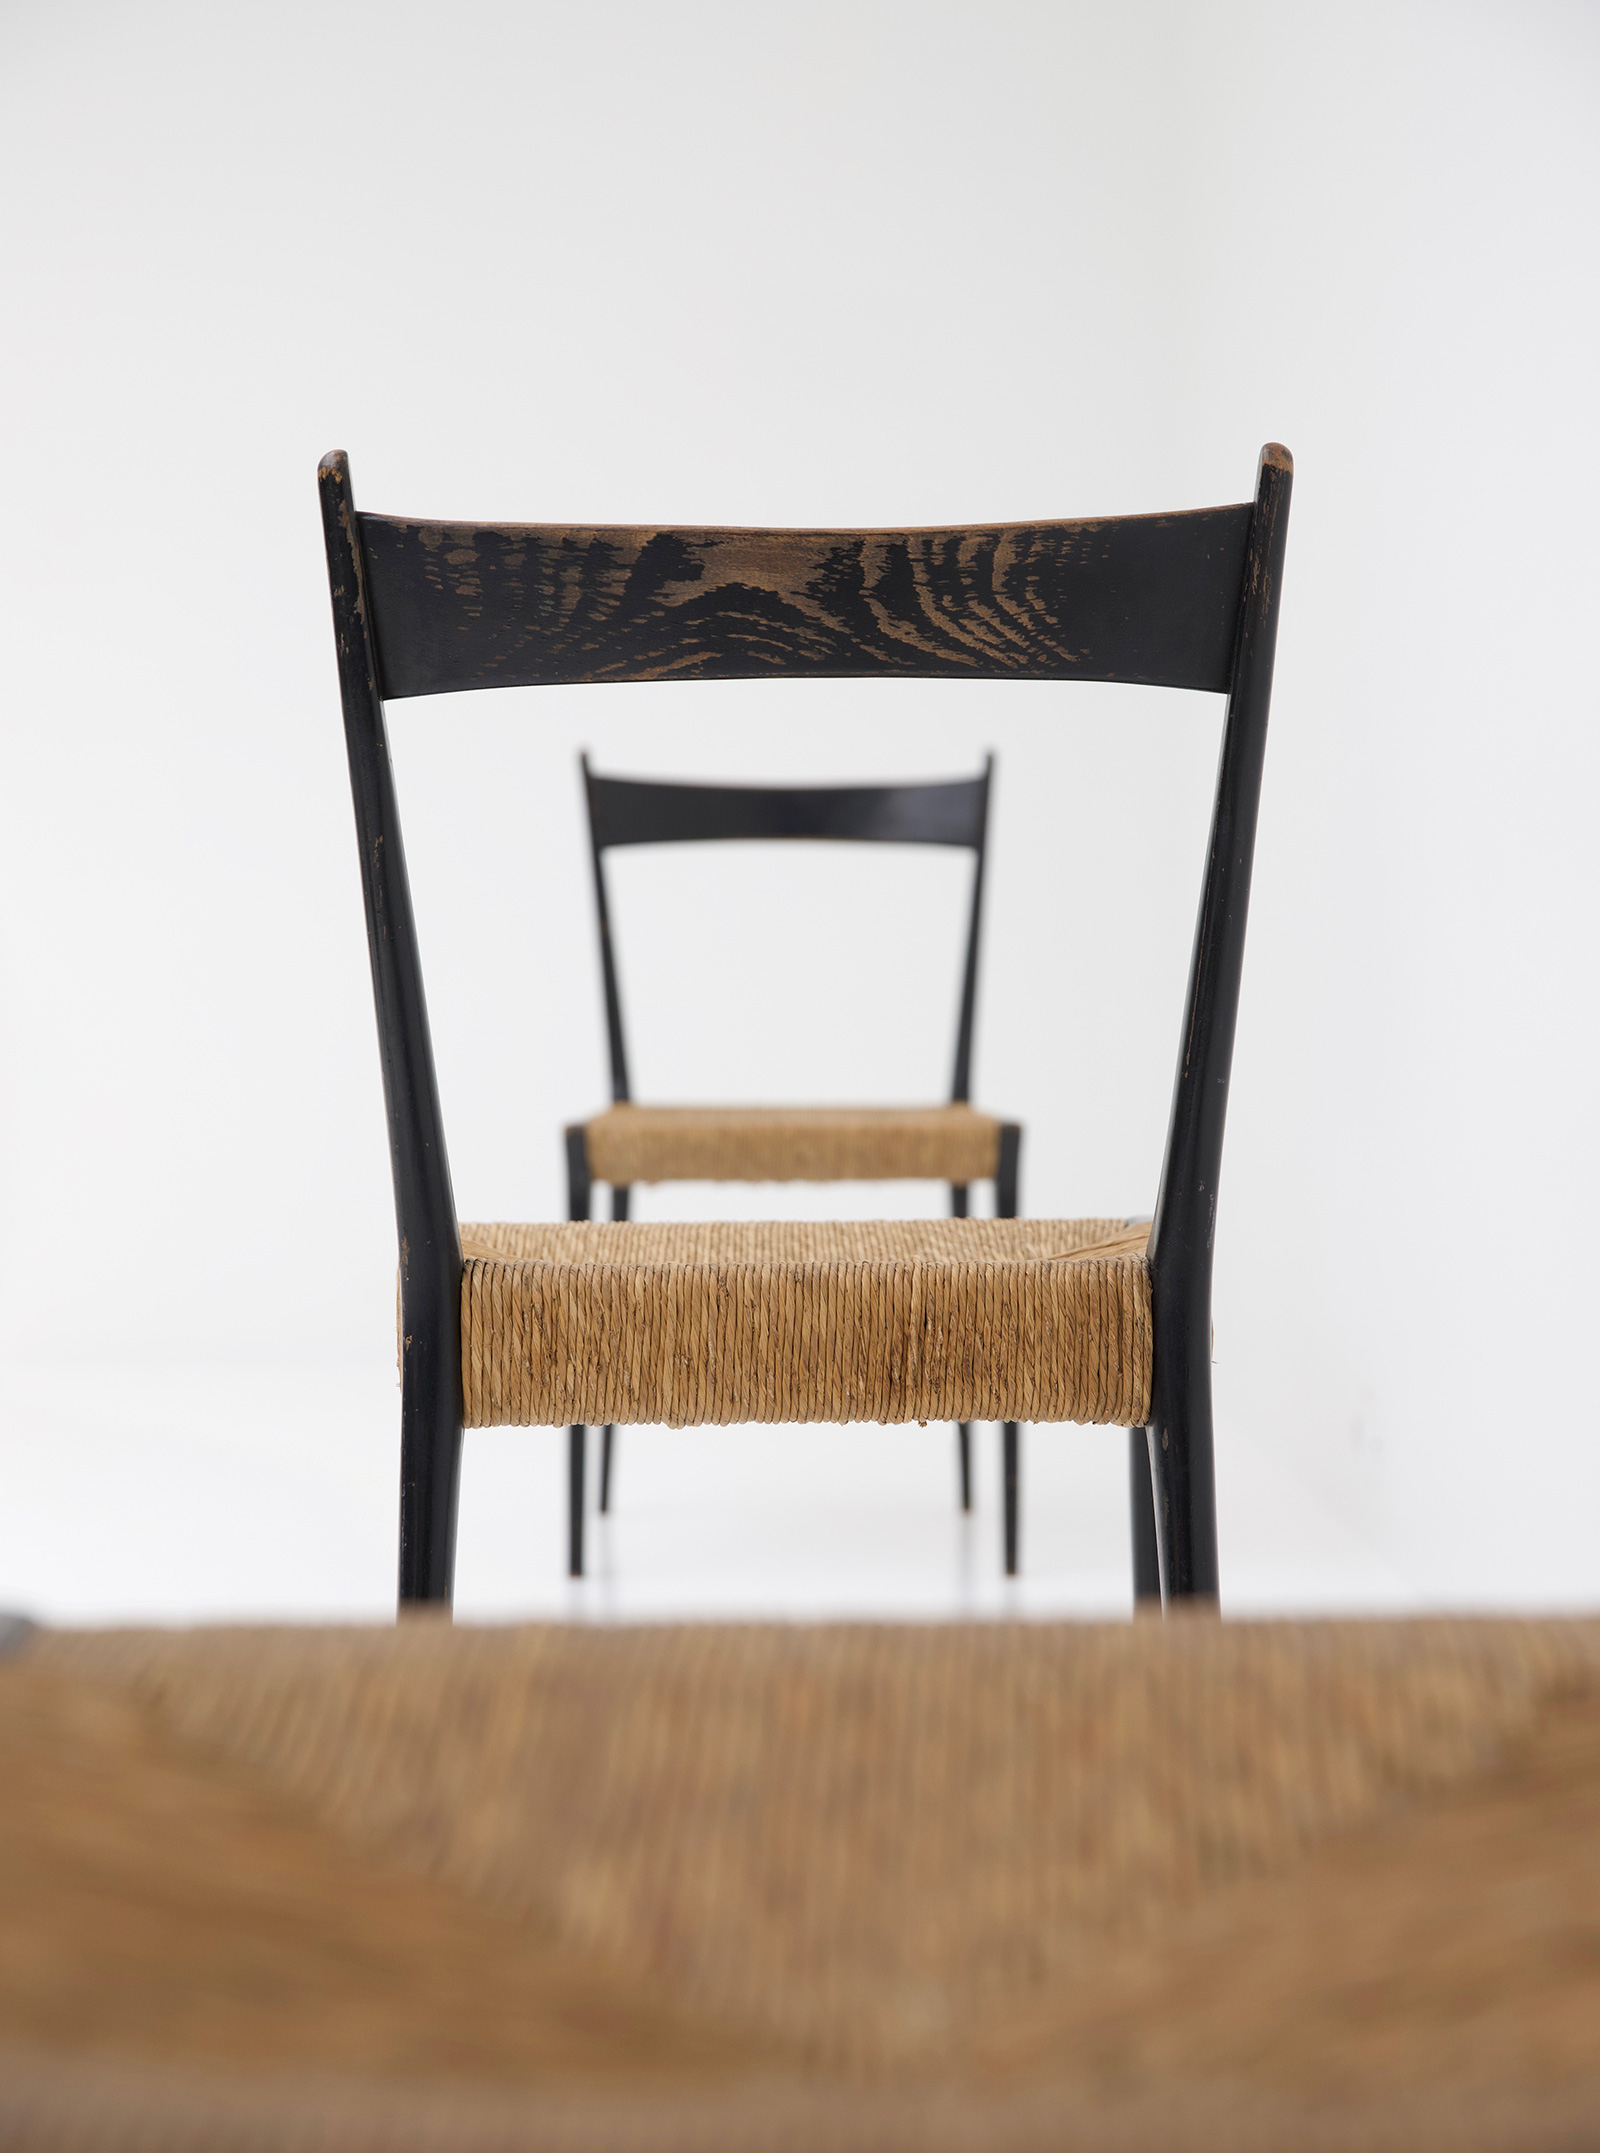 Alfred Hendrickx Woven Cane S2 Chairsimage 7